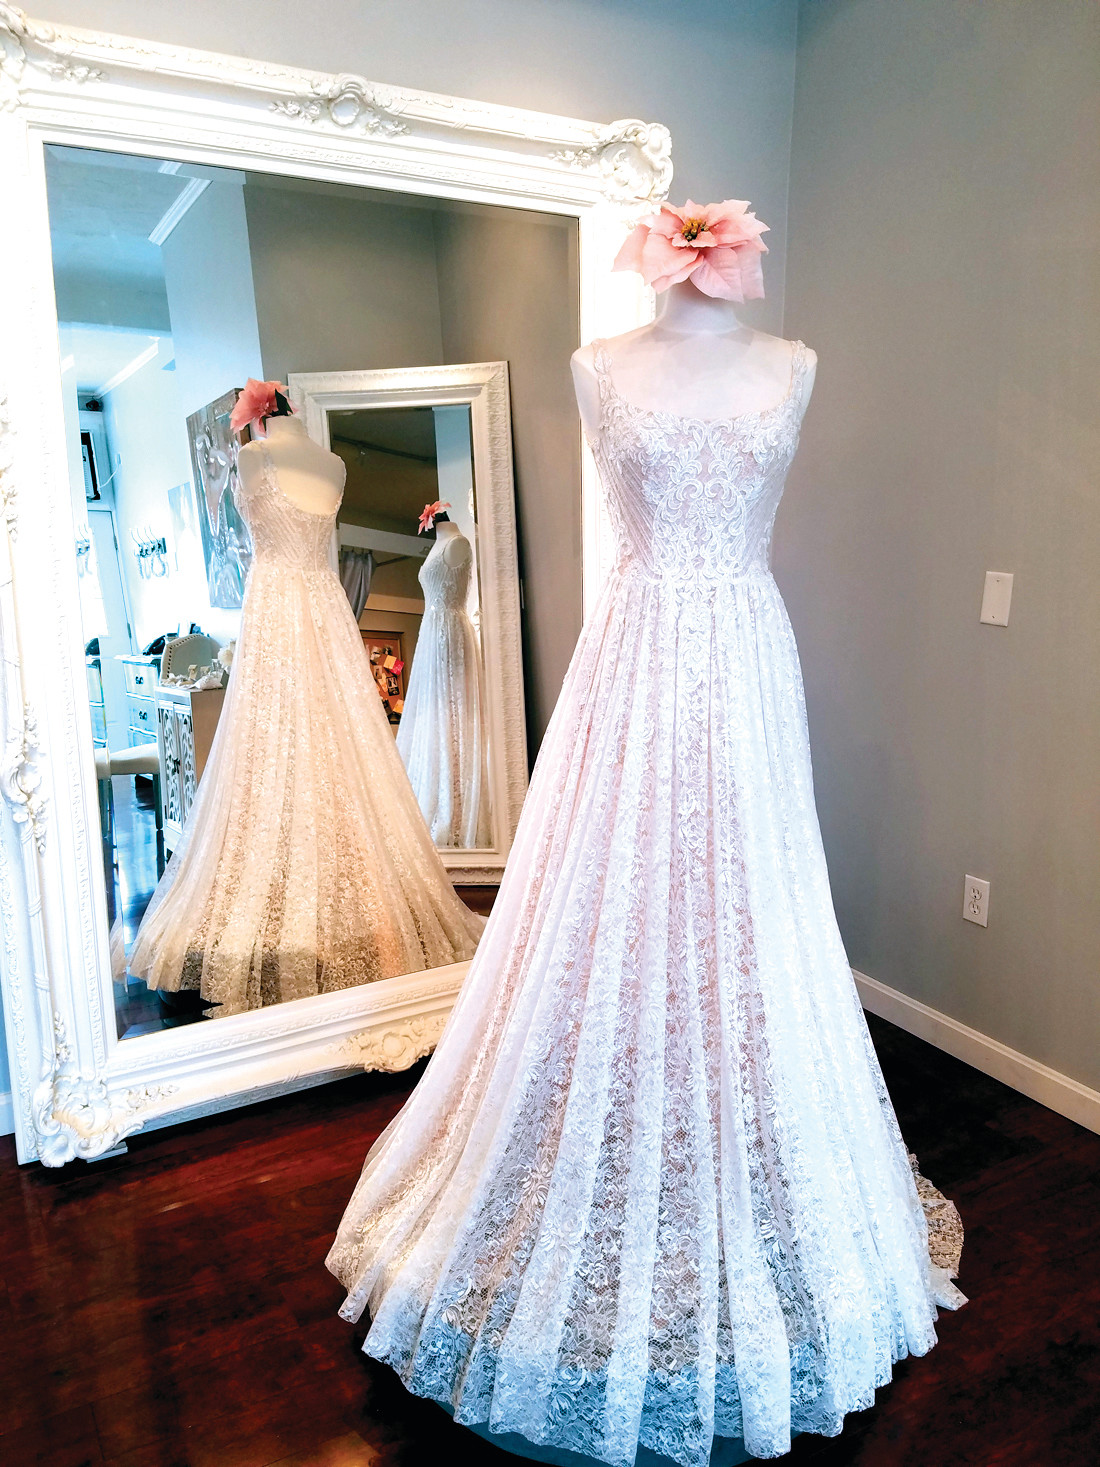 COMFORT FOR THE BRIDE: Spark Bridal Outlet on Cranston Street carries a 2017 Oksana Mukha design, a soft, flowing, and comfortable gown created from an ivory lace with a sheer cappuccino-colored underlay.